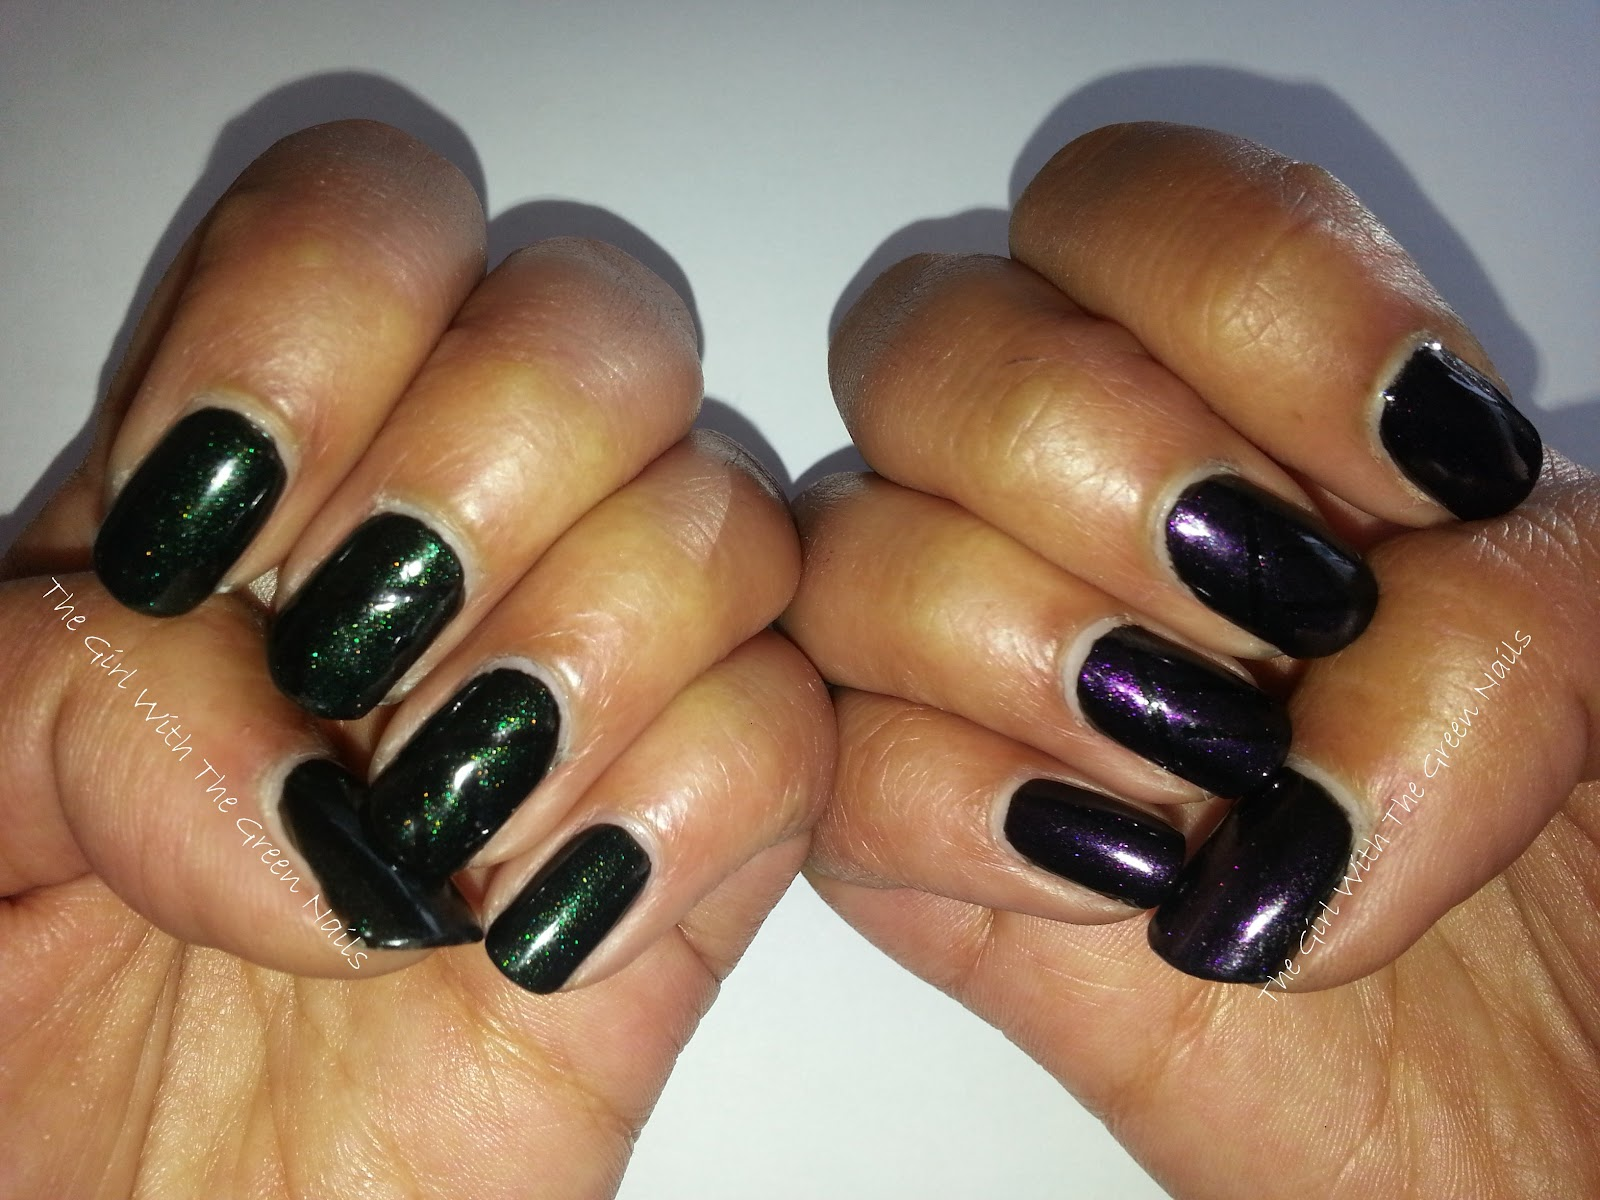 The Girl With The Green Nails: Tantalizing & Enchanting Funky Nails